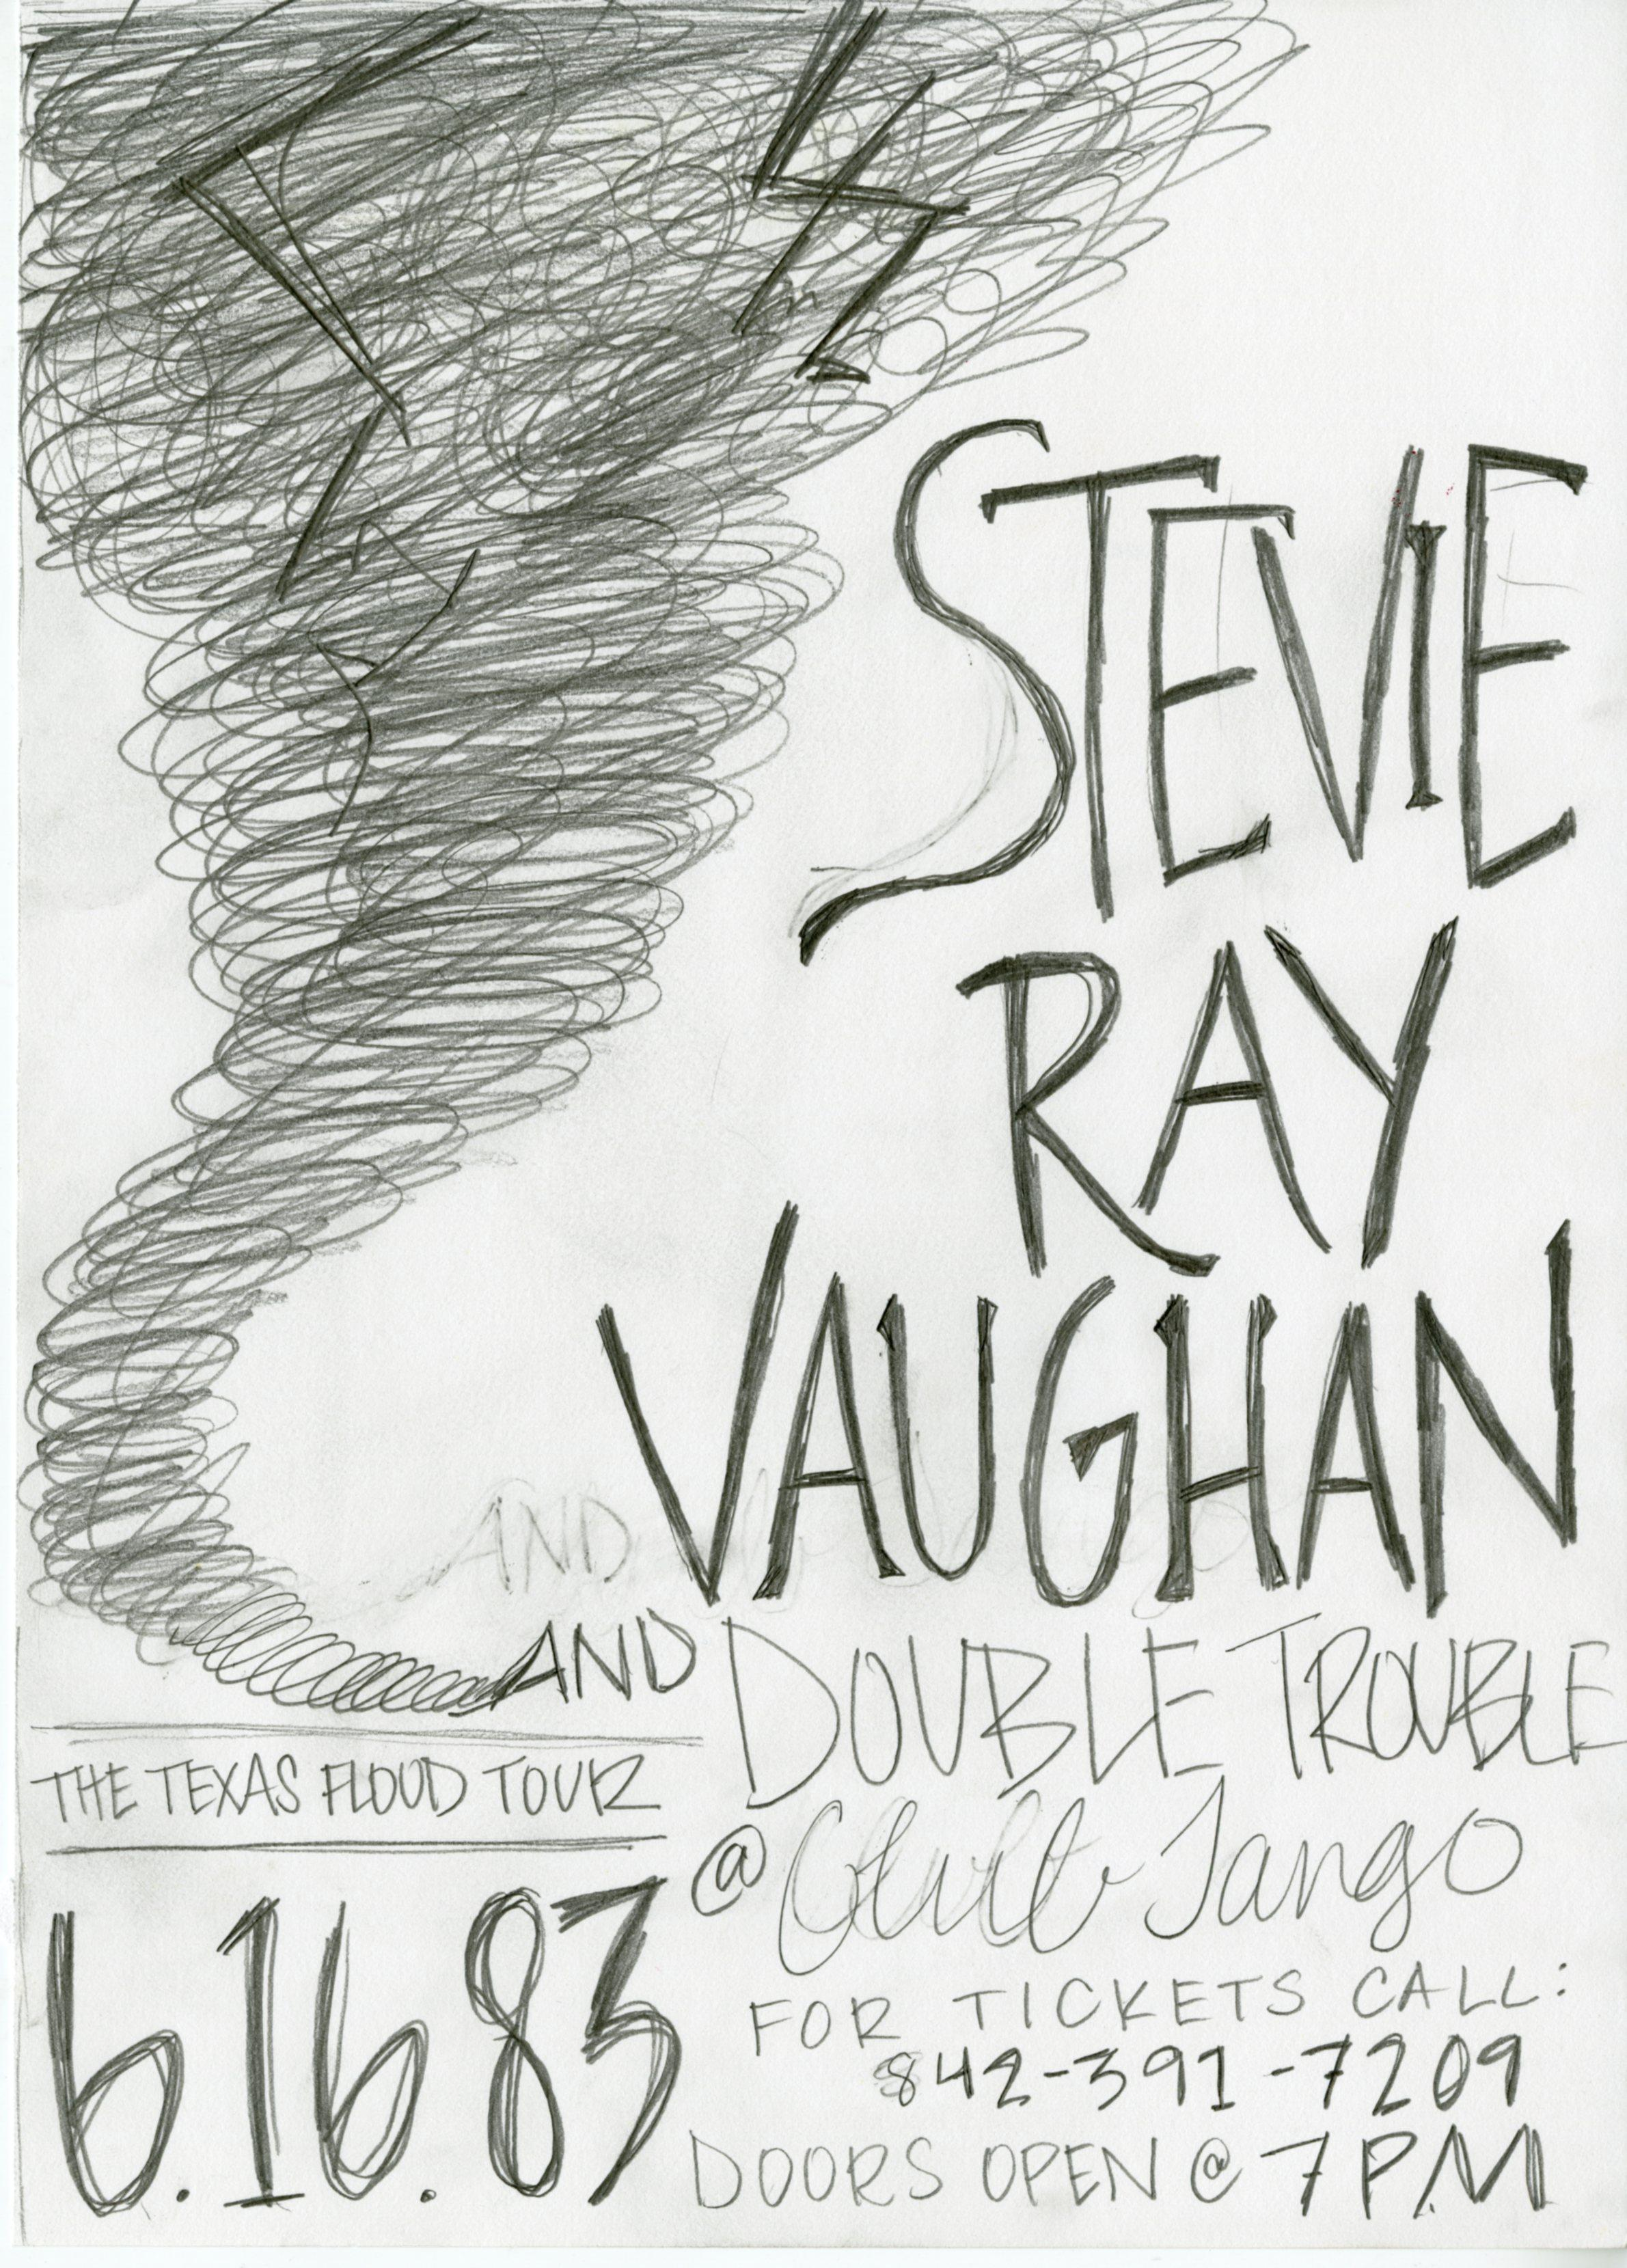 Stevie Ray Vaughan Concert Poster - image 2 - student project